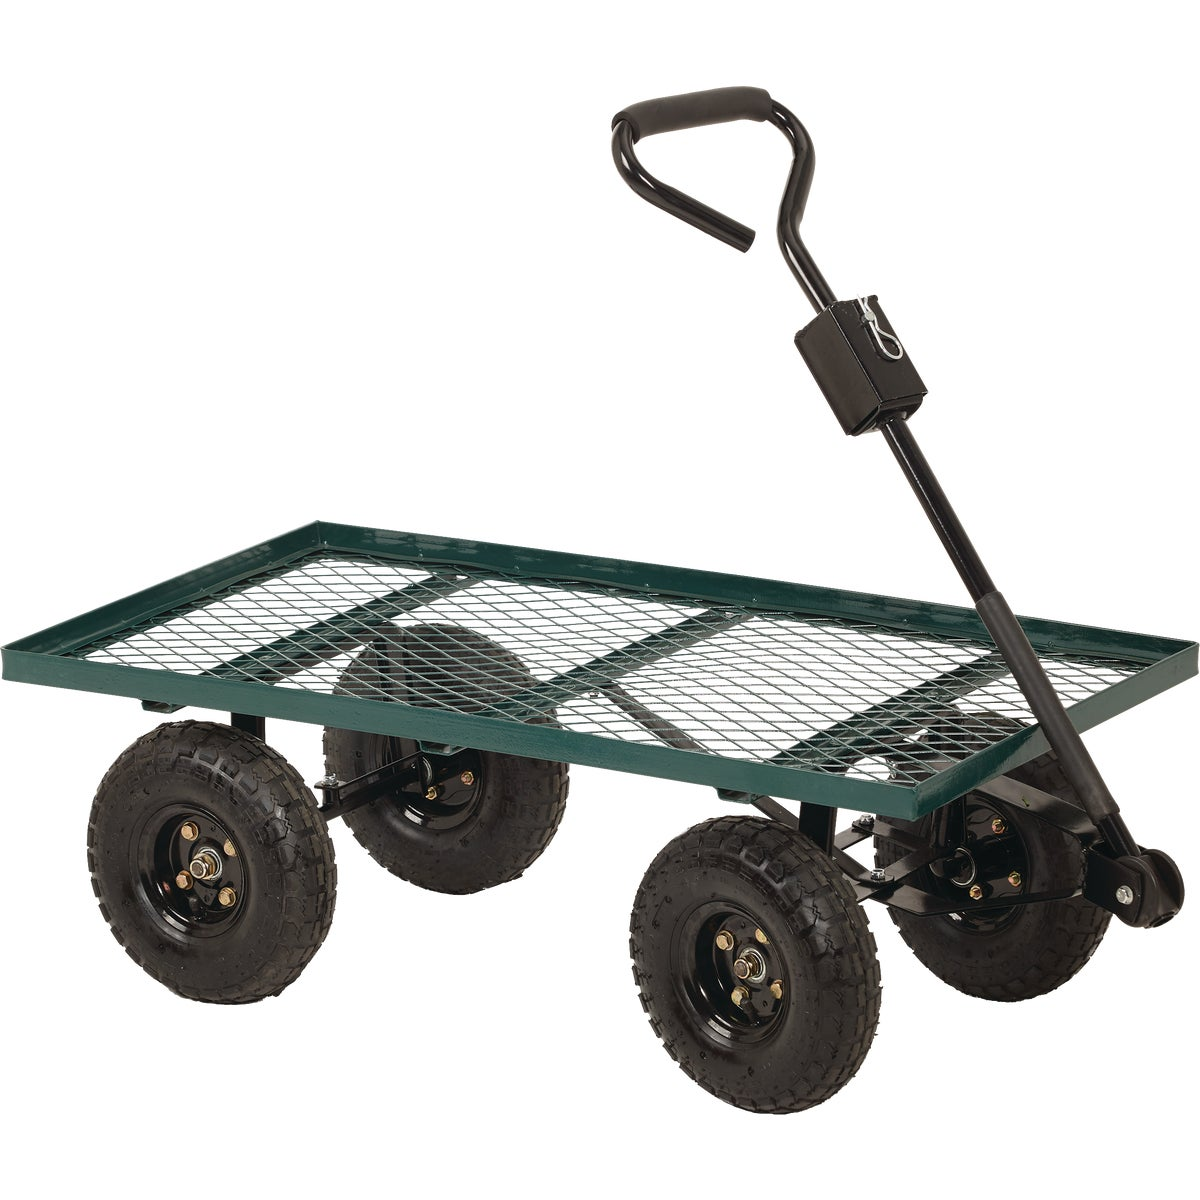 STEEL YARD CART - TC4206 by Do it Best